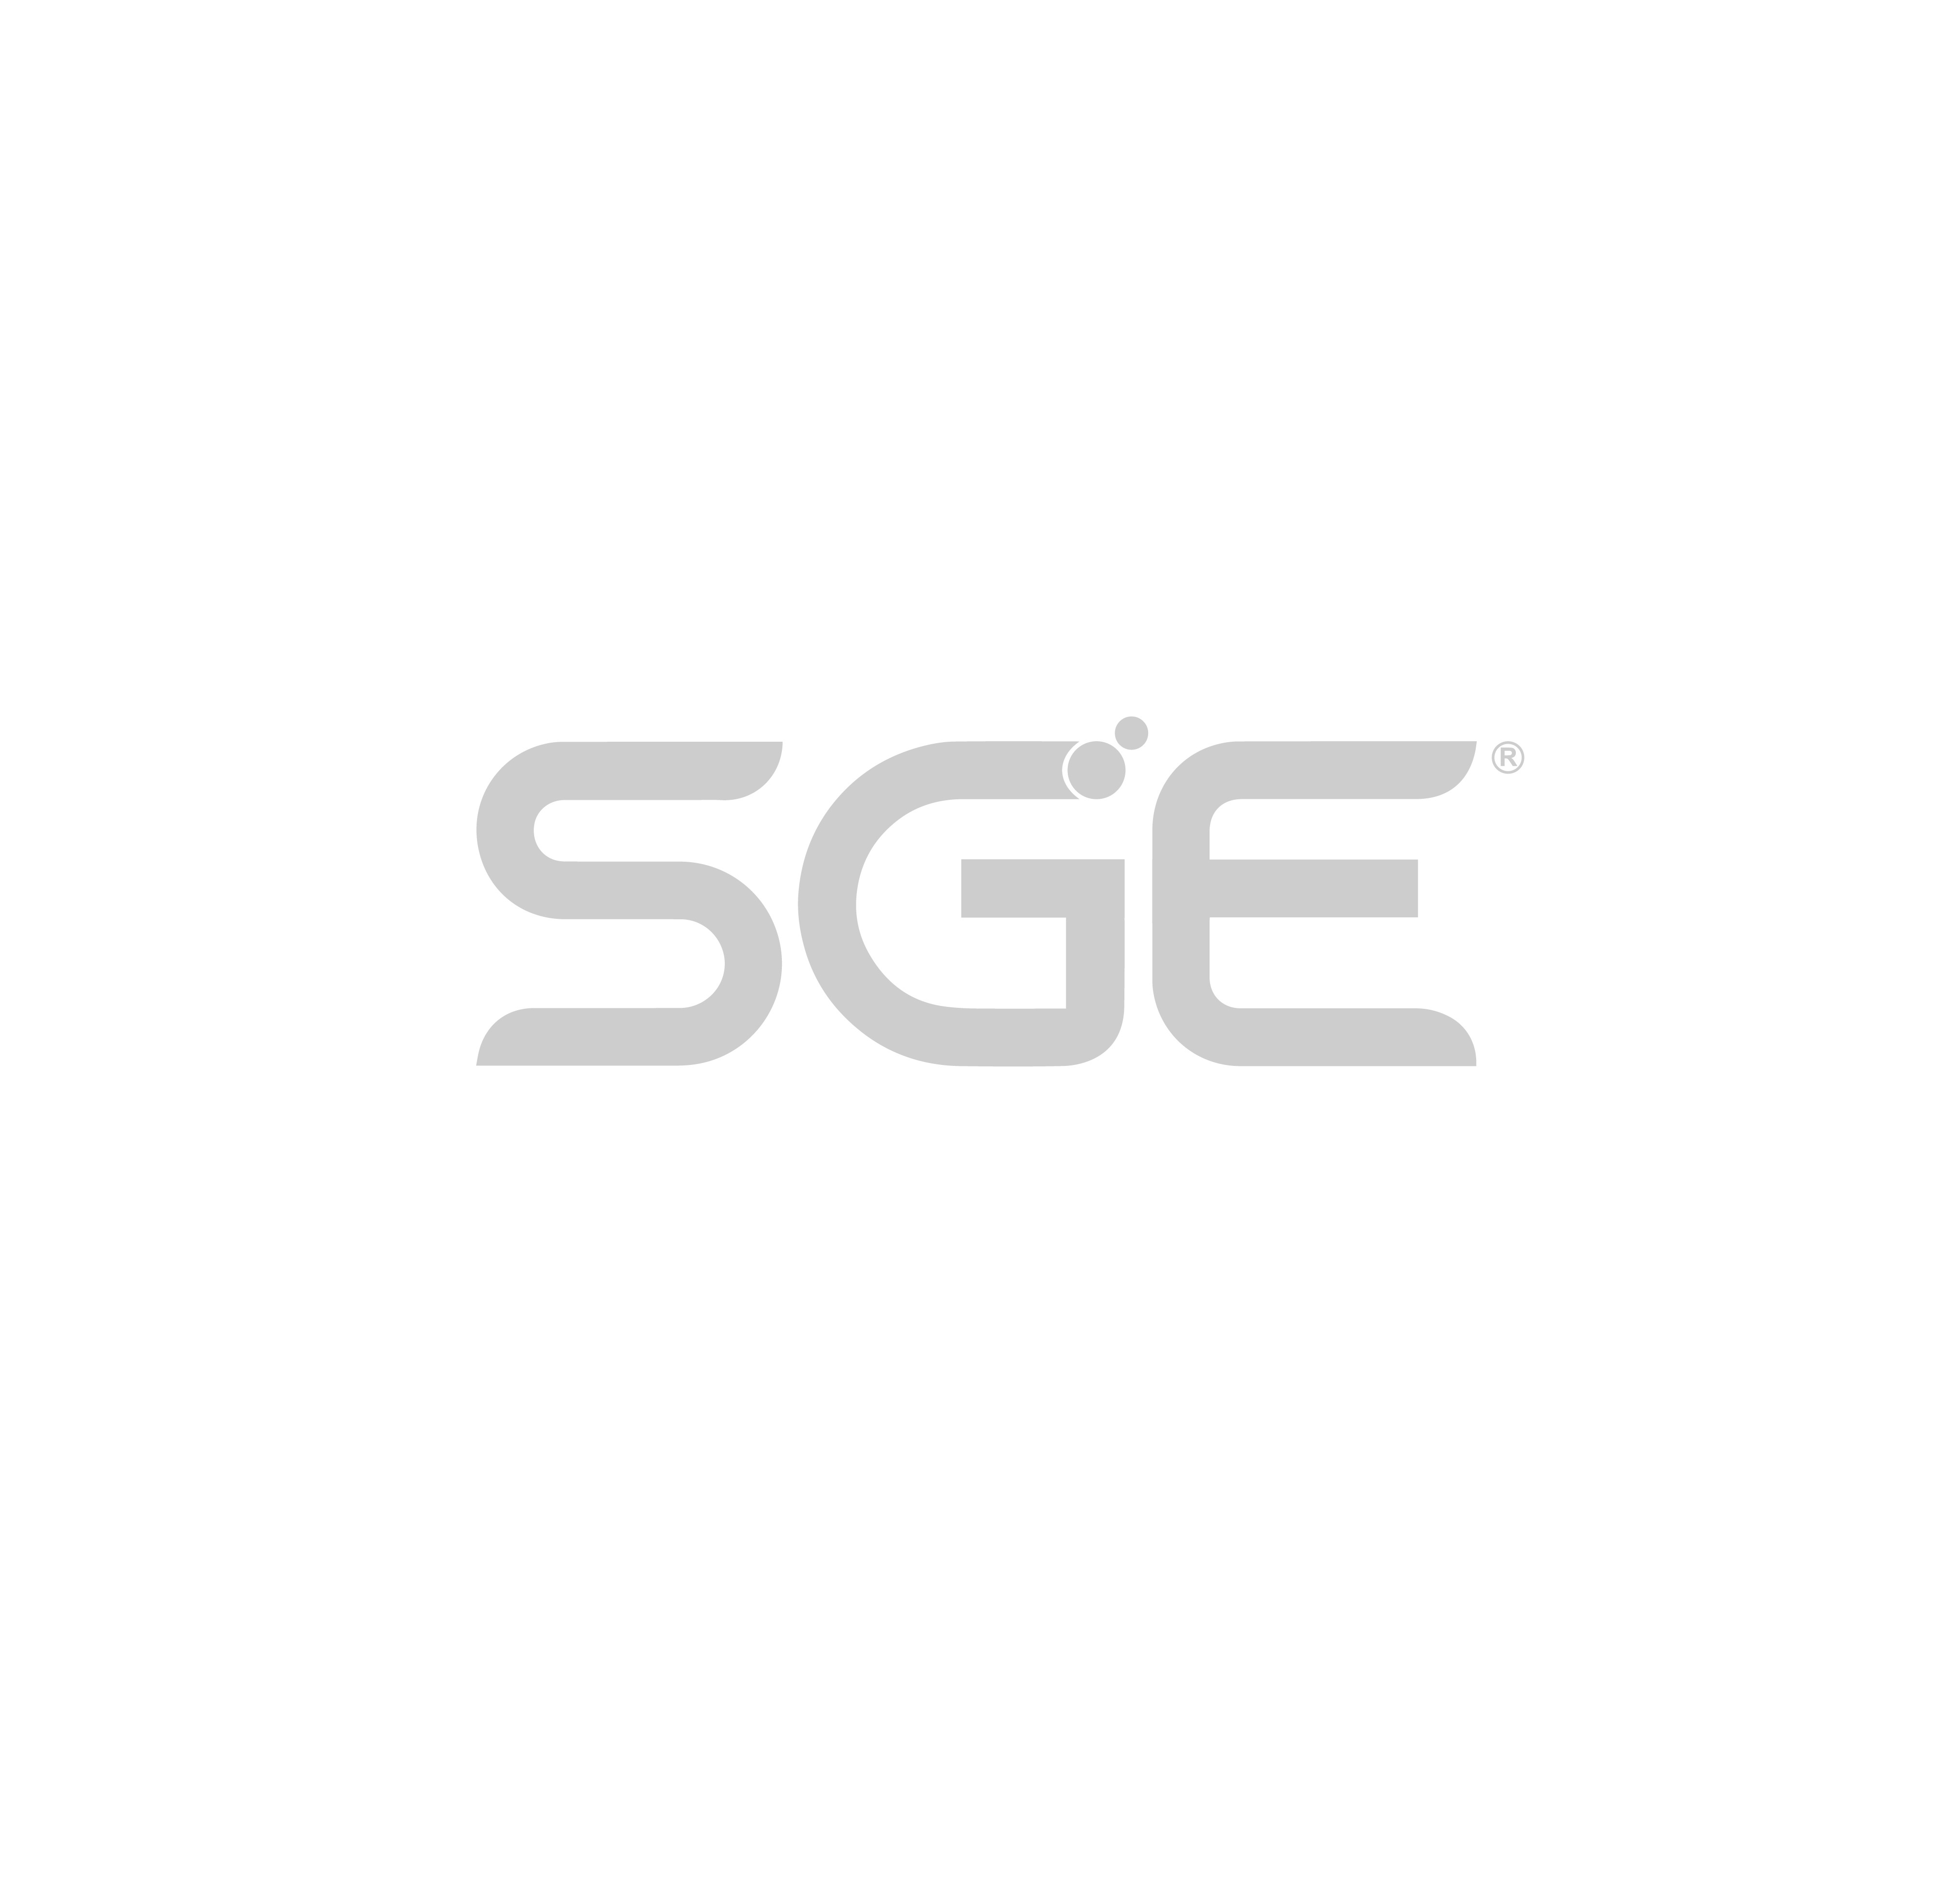 LED4020BKL-6V Led Smd Para Backlight Tv Pantalla Led 4.0Mm*2.0Mm 0.5W 6V 150Ma. 40-45Lm